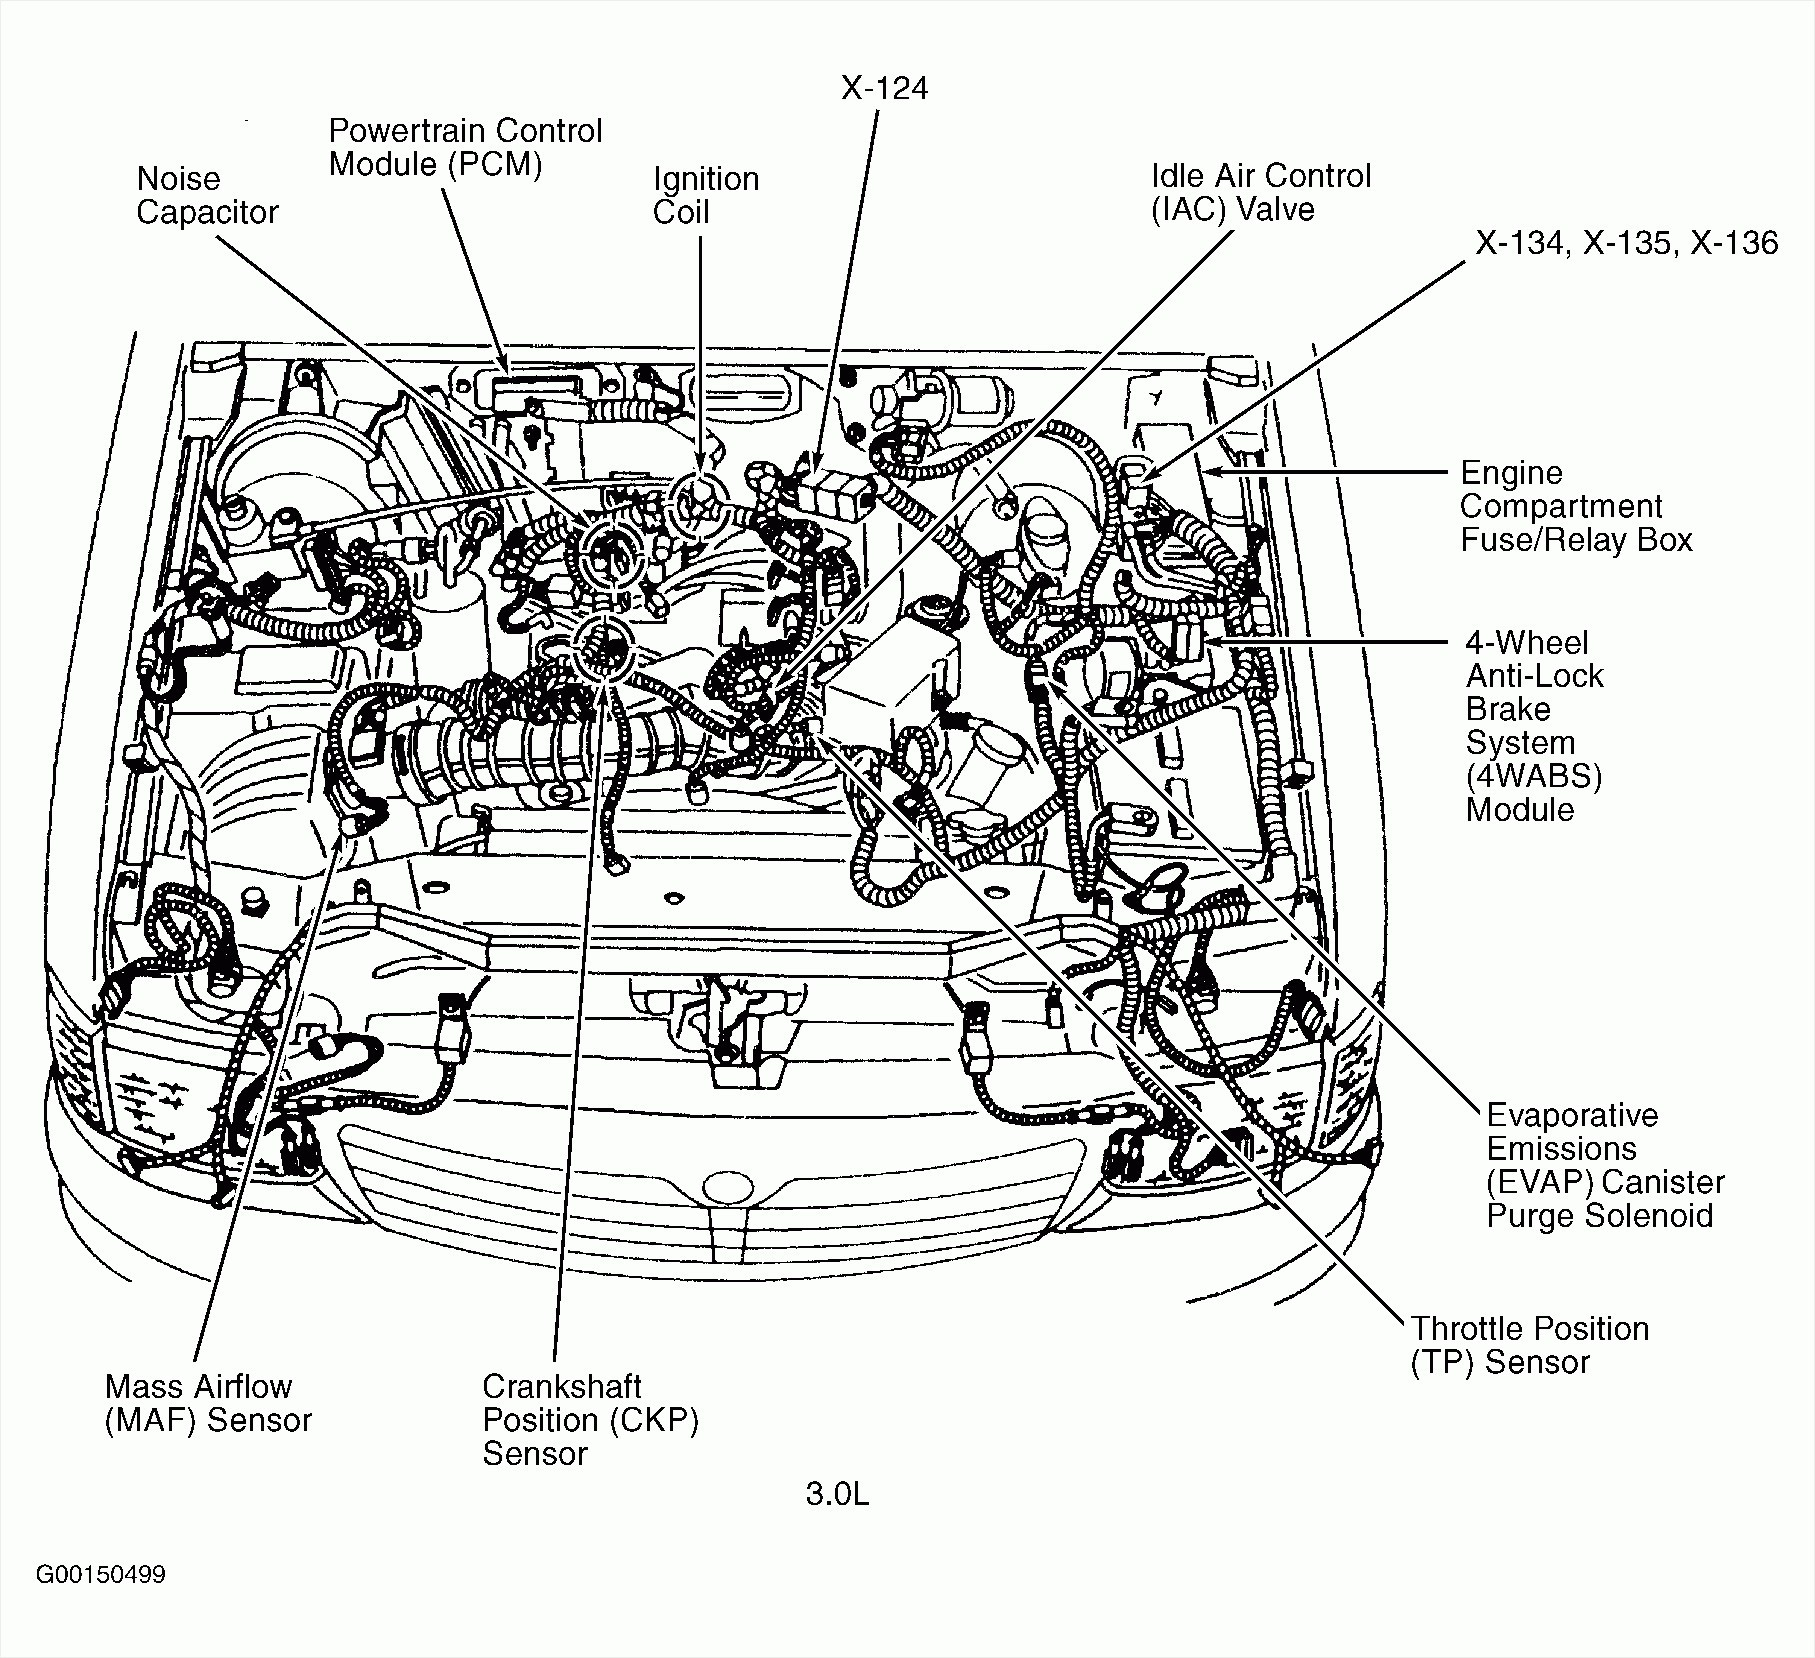 2003 mazda 3 engine diagram schematics wiring diagrams u2022 rh parntesis  co 1996 mazda b2300 engine diagram 1997 mazda b2300 engine diagram